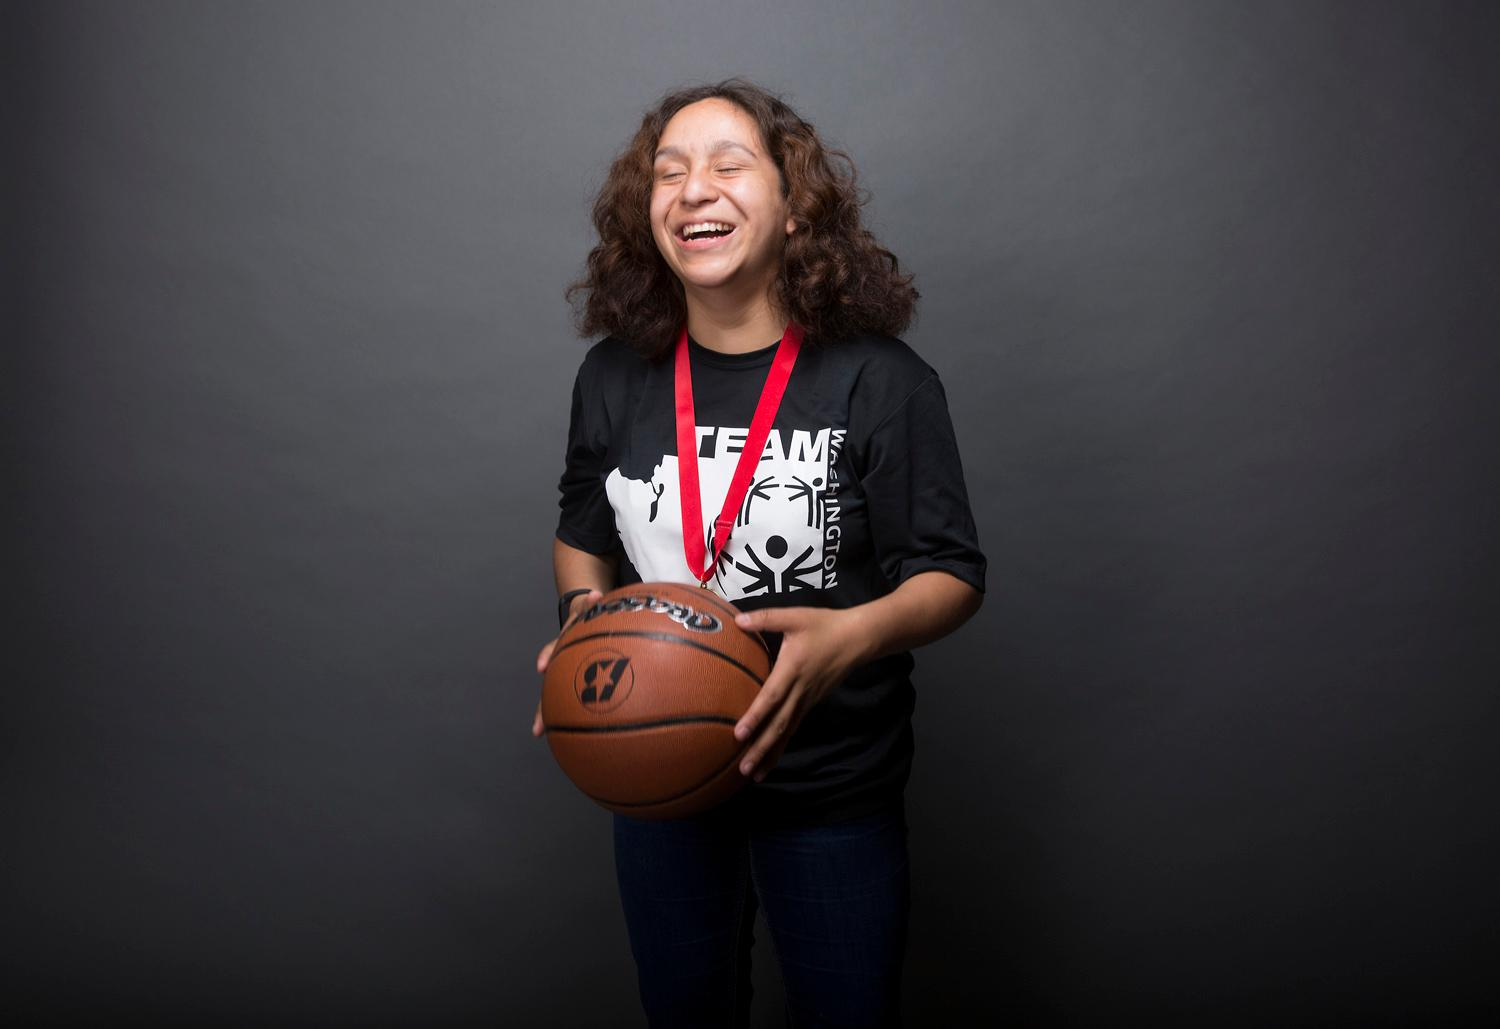 Introducing Melanie Hernandez! Melanie will be competing in basketball. The Special Olympics USA will take place in Seattle from July 1-6, with a grand opening ceremony and Parade of Athletes and the lighting of the Special Olympics Flame of Hope. (Sy Bean / Seattle Refined)